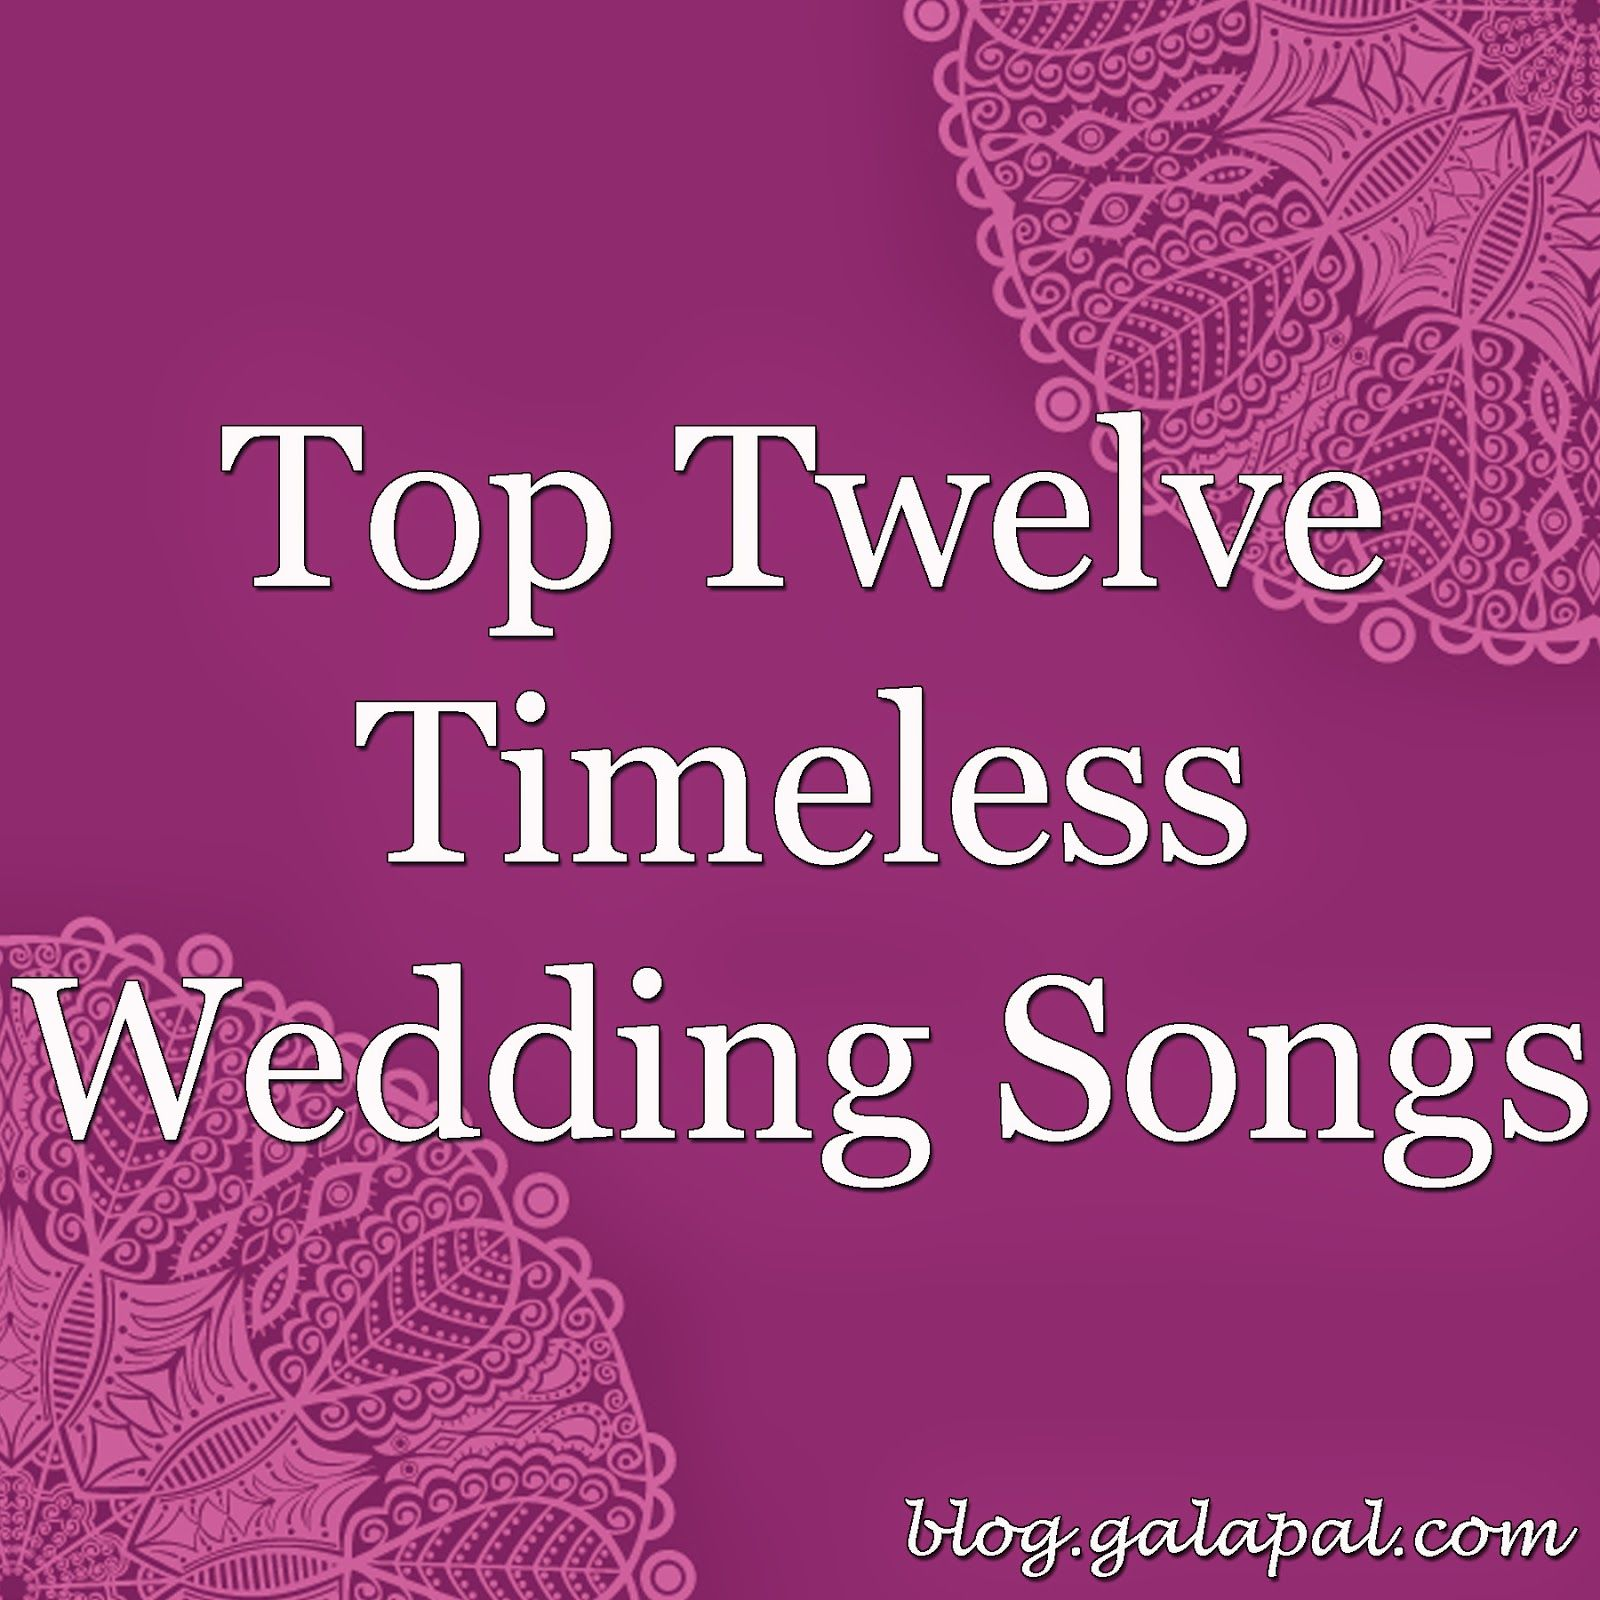 Top Twelve Timeless Wedding Songs (complete With A Spotify